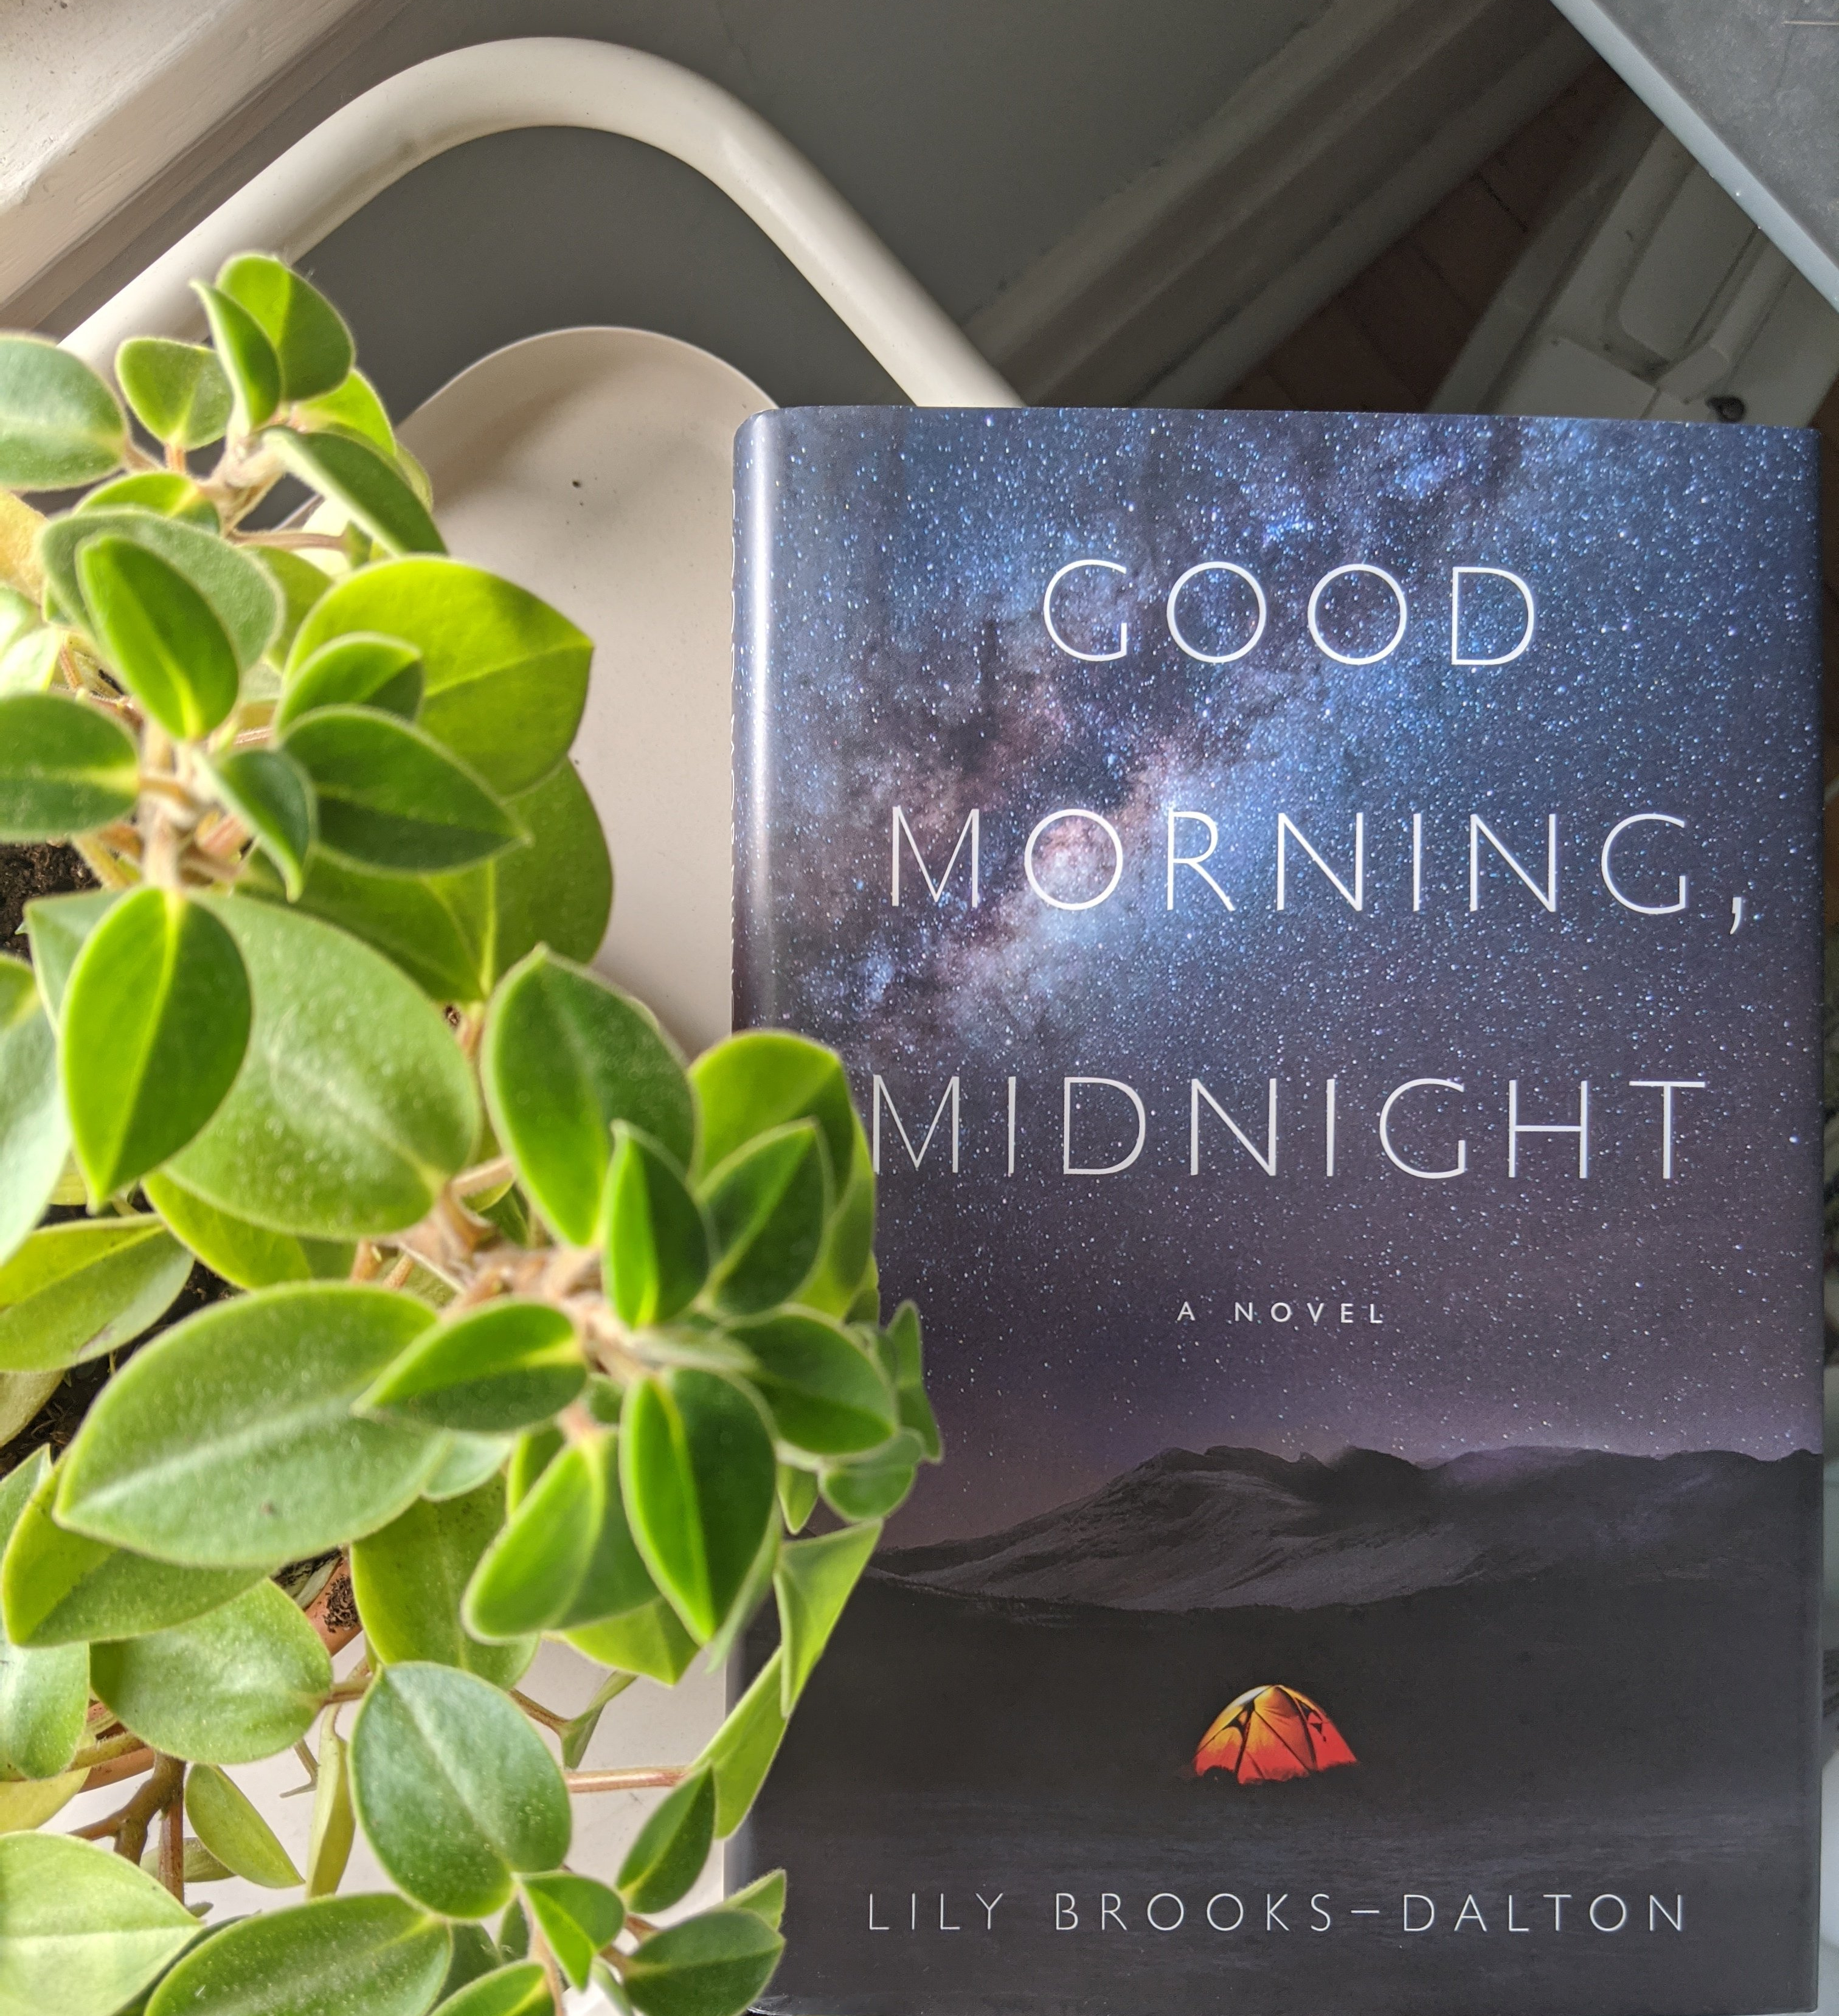 A picture of the book good morning midnight. The cover depicts a single orange tent in the middle of what looks to be an arctic tundra, with an incredible bright and star filled sky above them. In the background there are a few mountains. To the left of the book there is a plant.